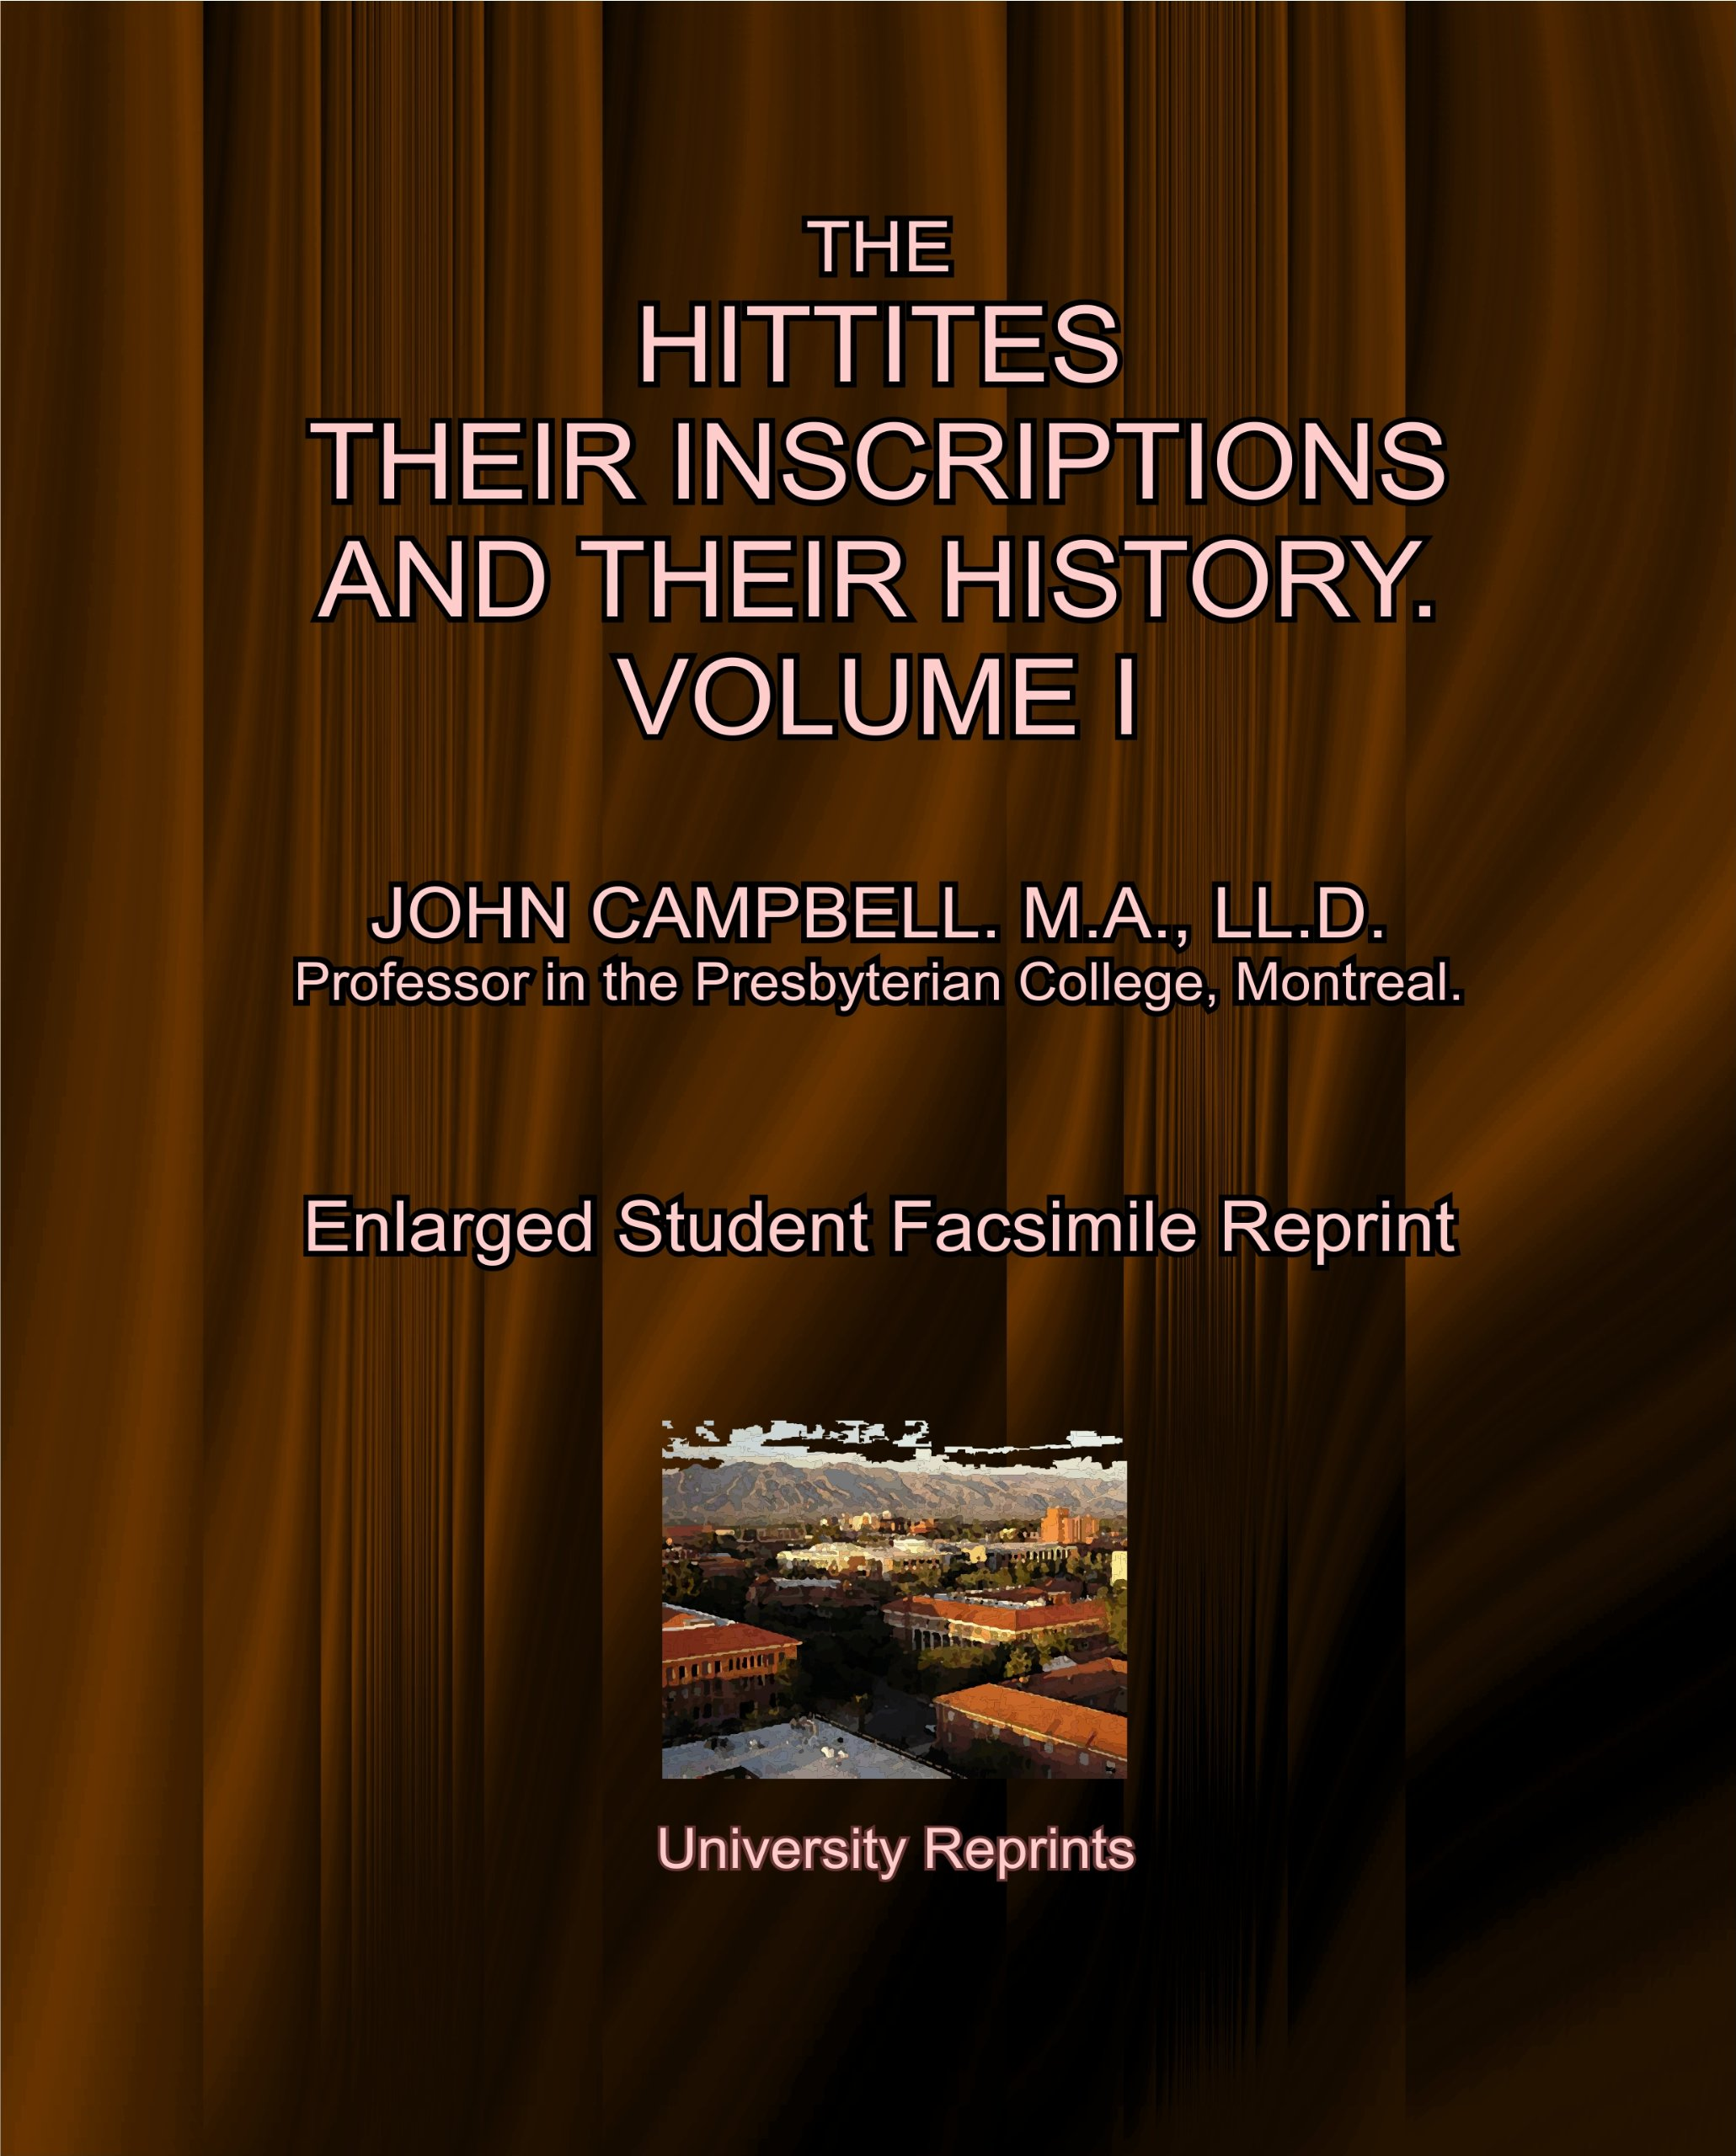 Download THE HITTITES THEIR INSCRIPTIONS AND THEIR HISTORY. VOLUME I by JOHN CAMPBELL. M.A., LL.D. Professor in the Presbyterian College, Montreal. (Student Facsimile) pdf epub